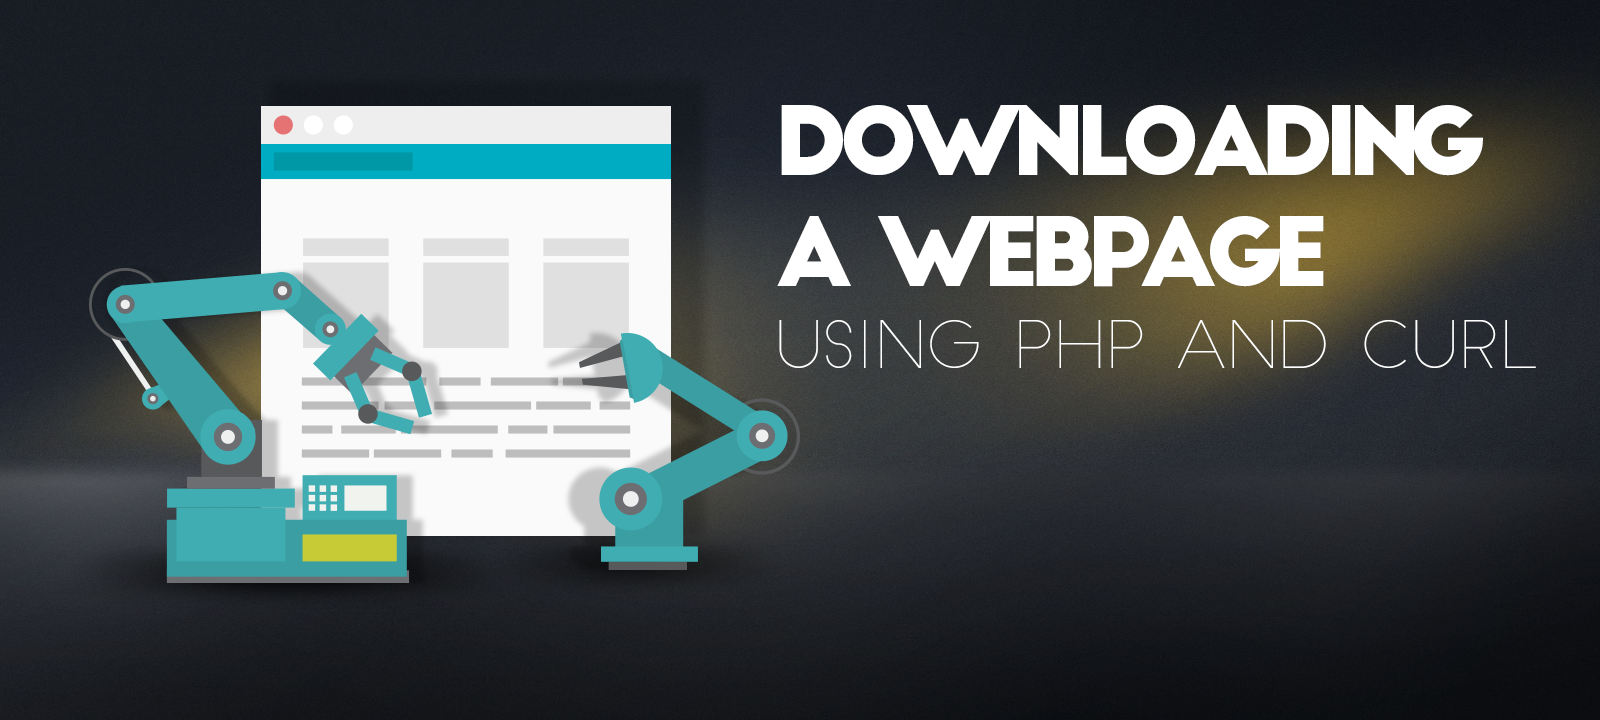 How to Download a Webpage using PHP and cURL